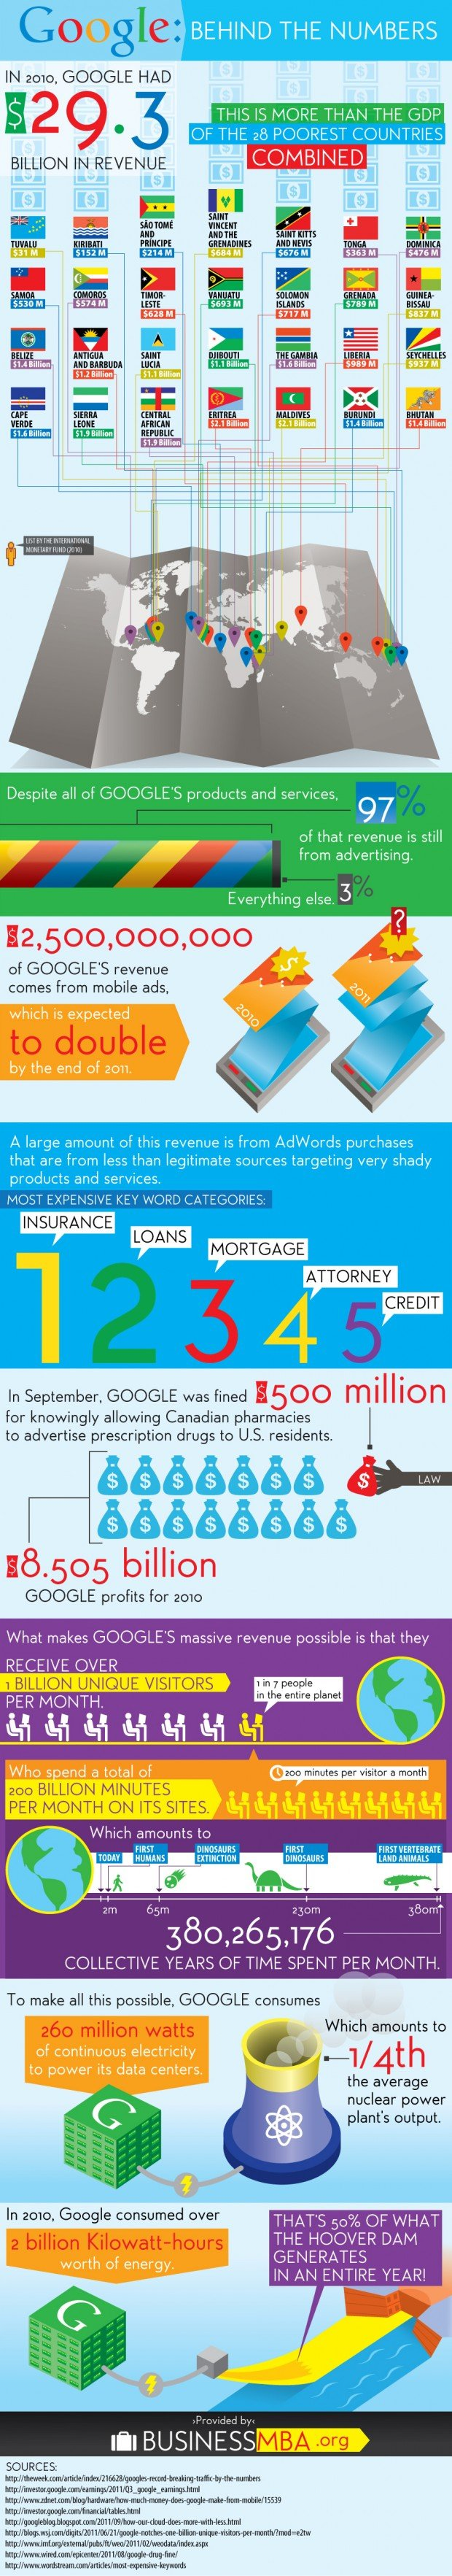 Google: Behind the Numbers [Infographic]